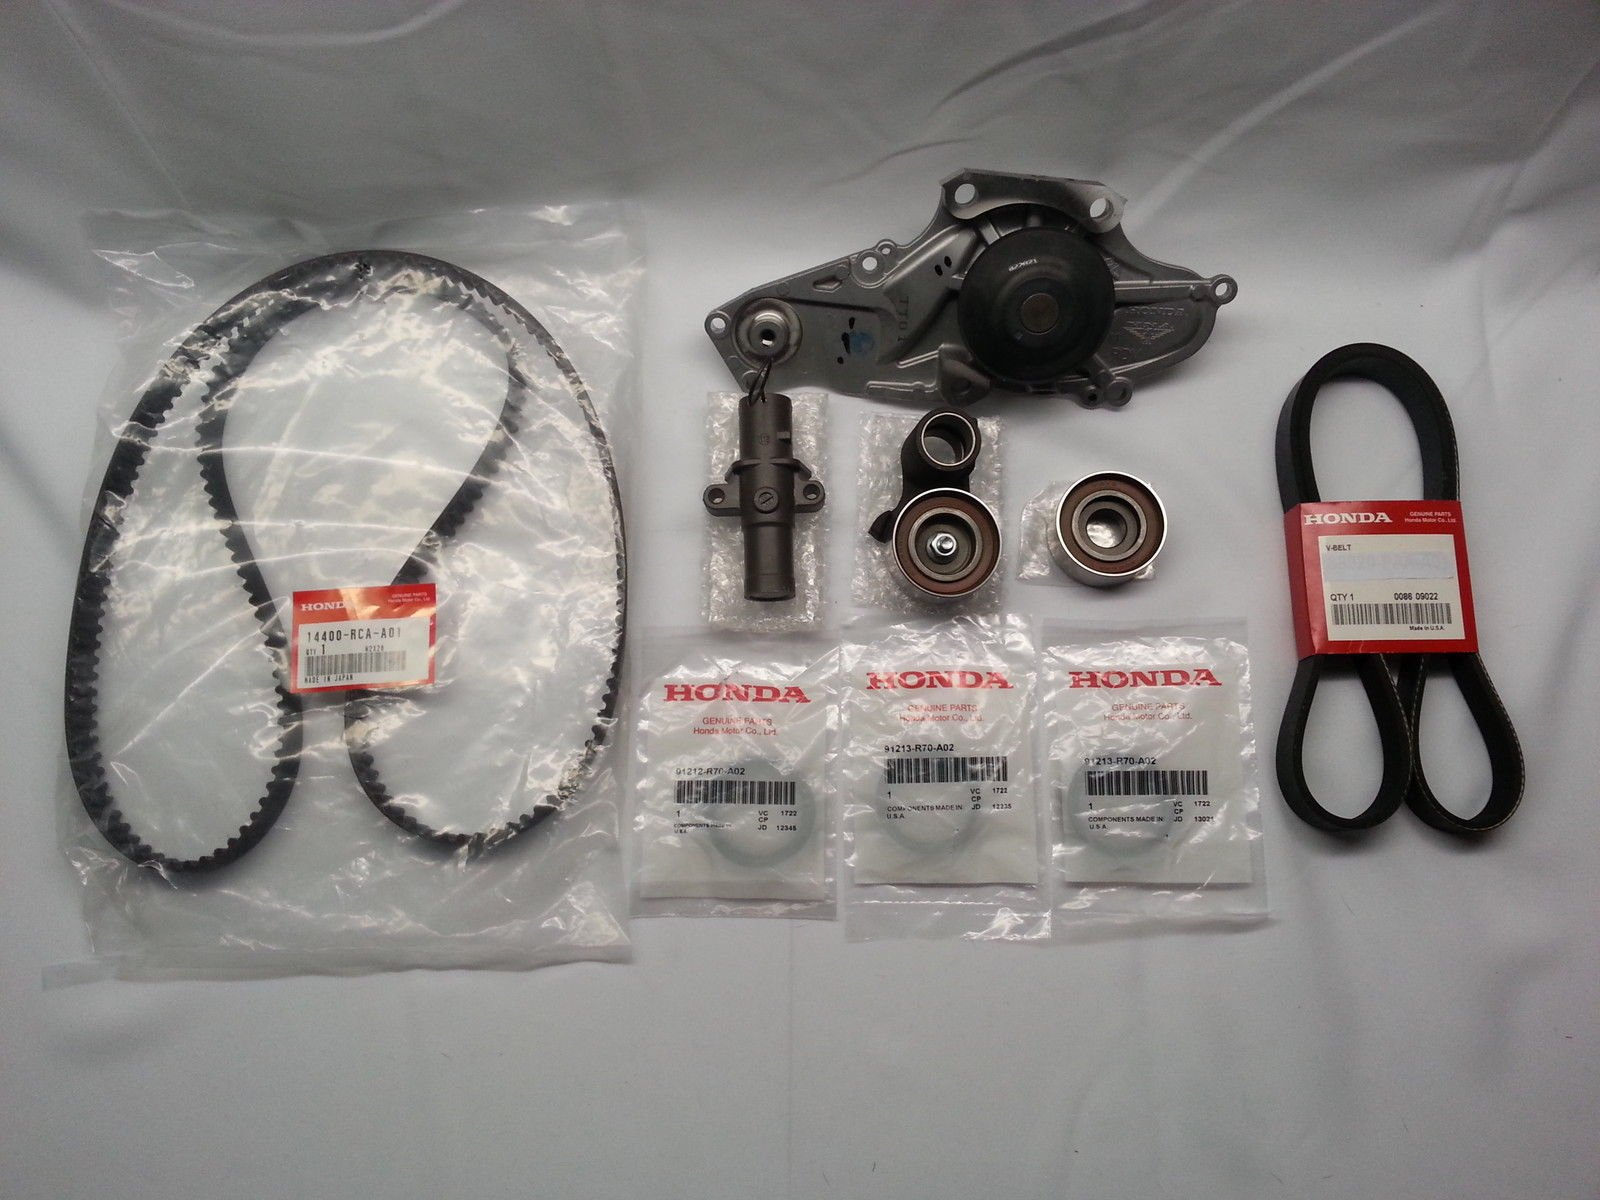 GENUINE/OEM COMPLETE TIMING BELT & WATER PUMP KIT HONDA/ACURA V6 W/FACTORY PARTS